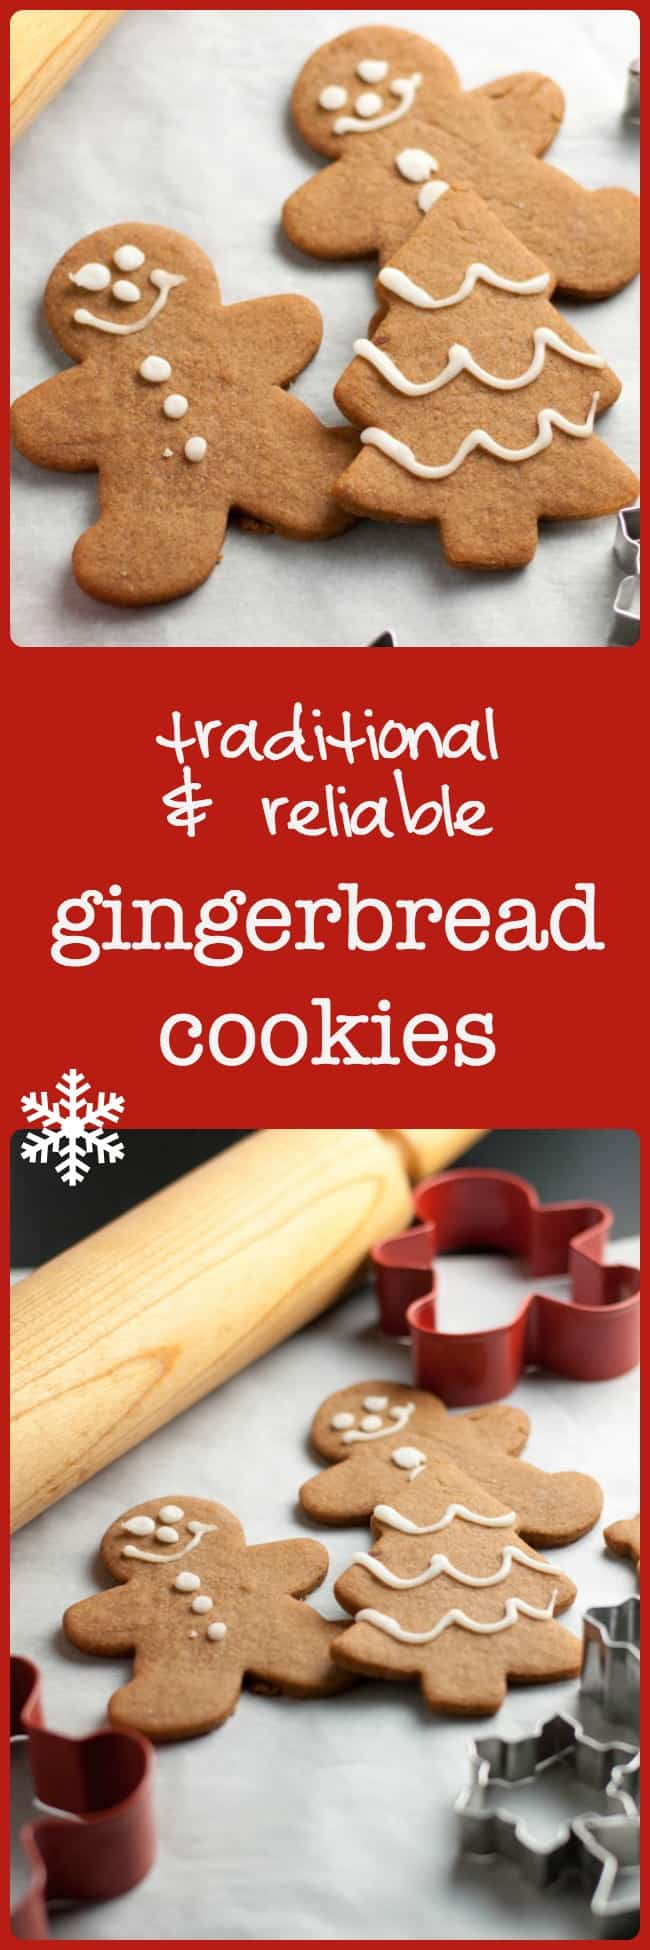 Traditional and Reliable Gingerbread Cut-Out Cookies. A family favourite recipe. Fun to make, fun to decorate! Even more fun to eat.